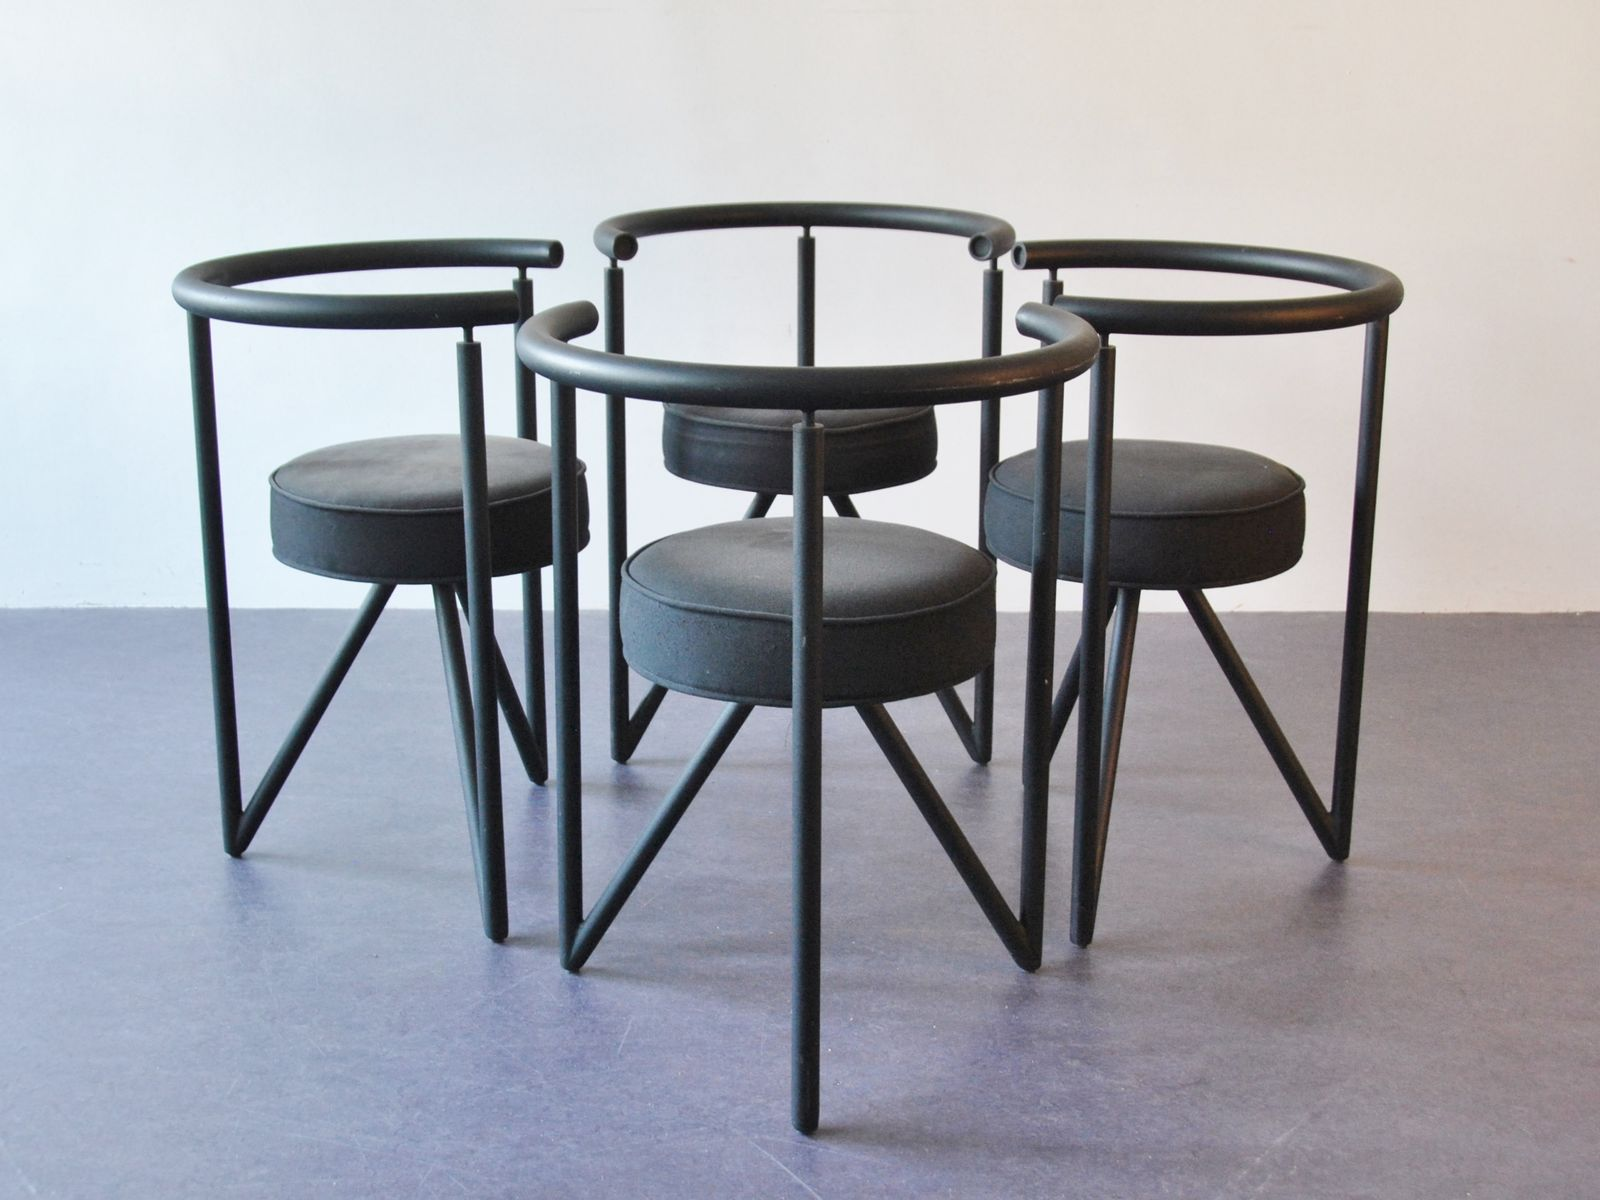 Miss dorn dining chairs by philippe starck set of 4 for for Philippe starck dining tables